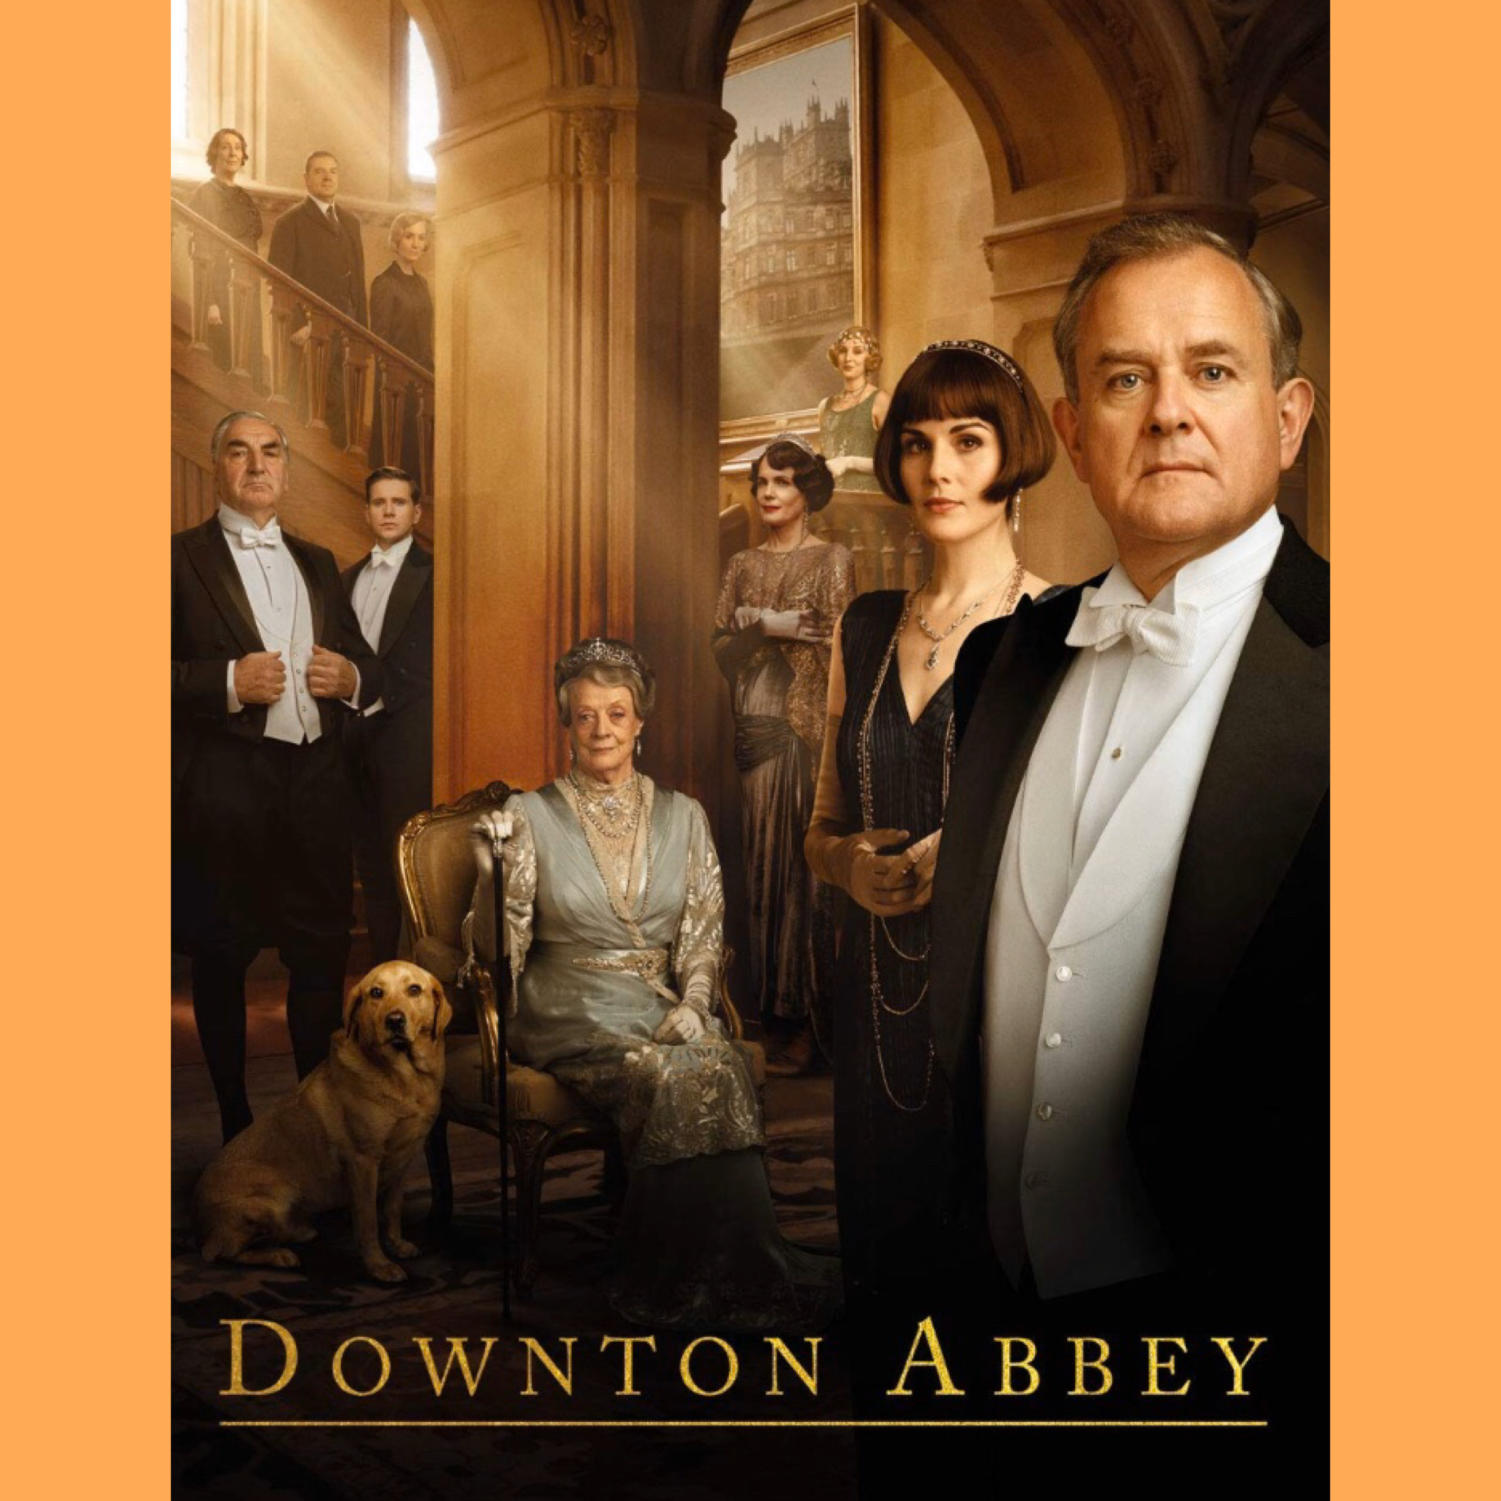 The 2019 Movie Cover of Downton Abbey